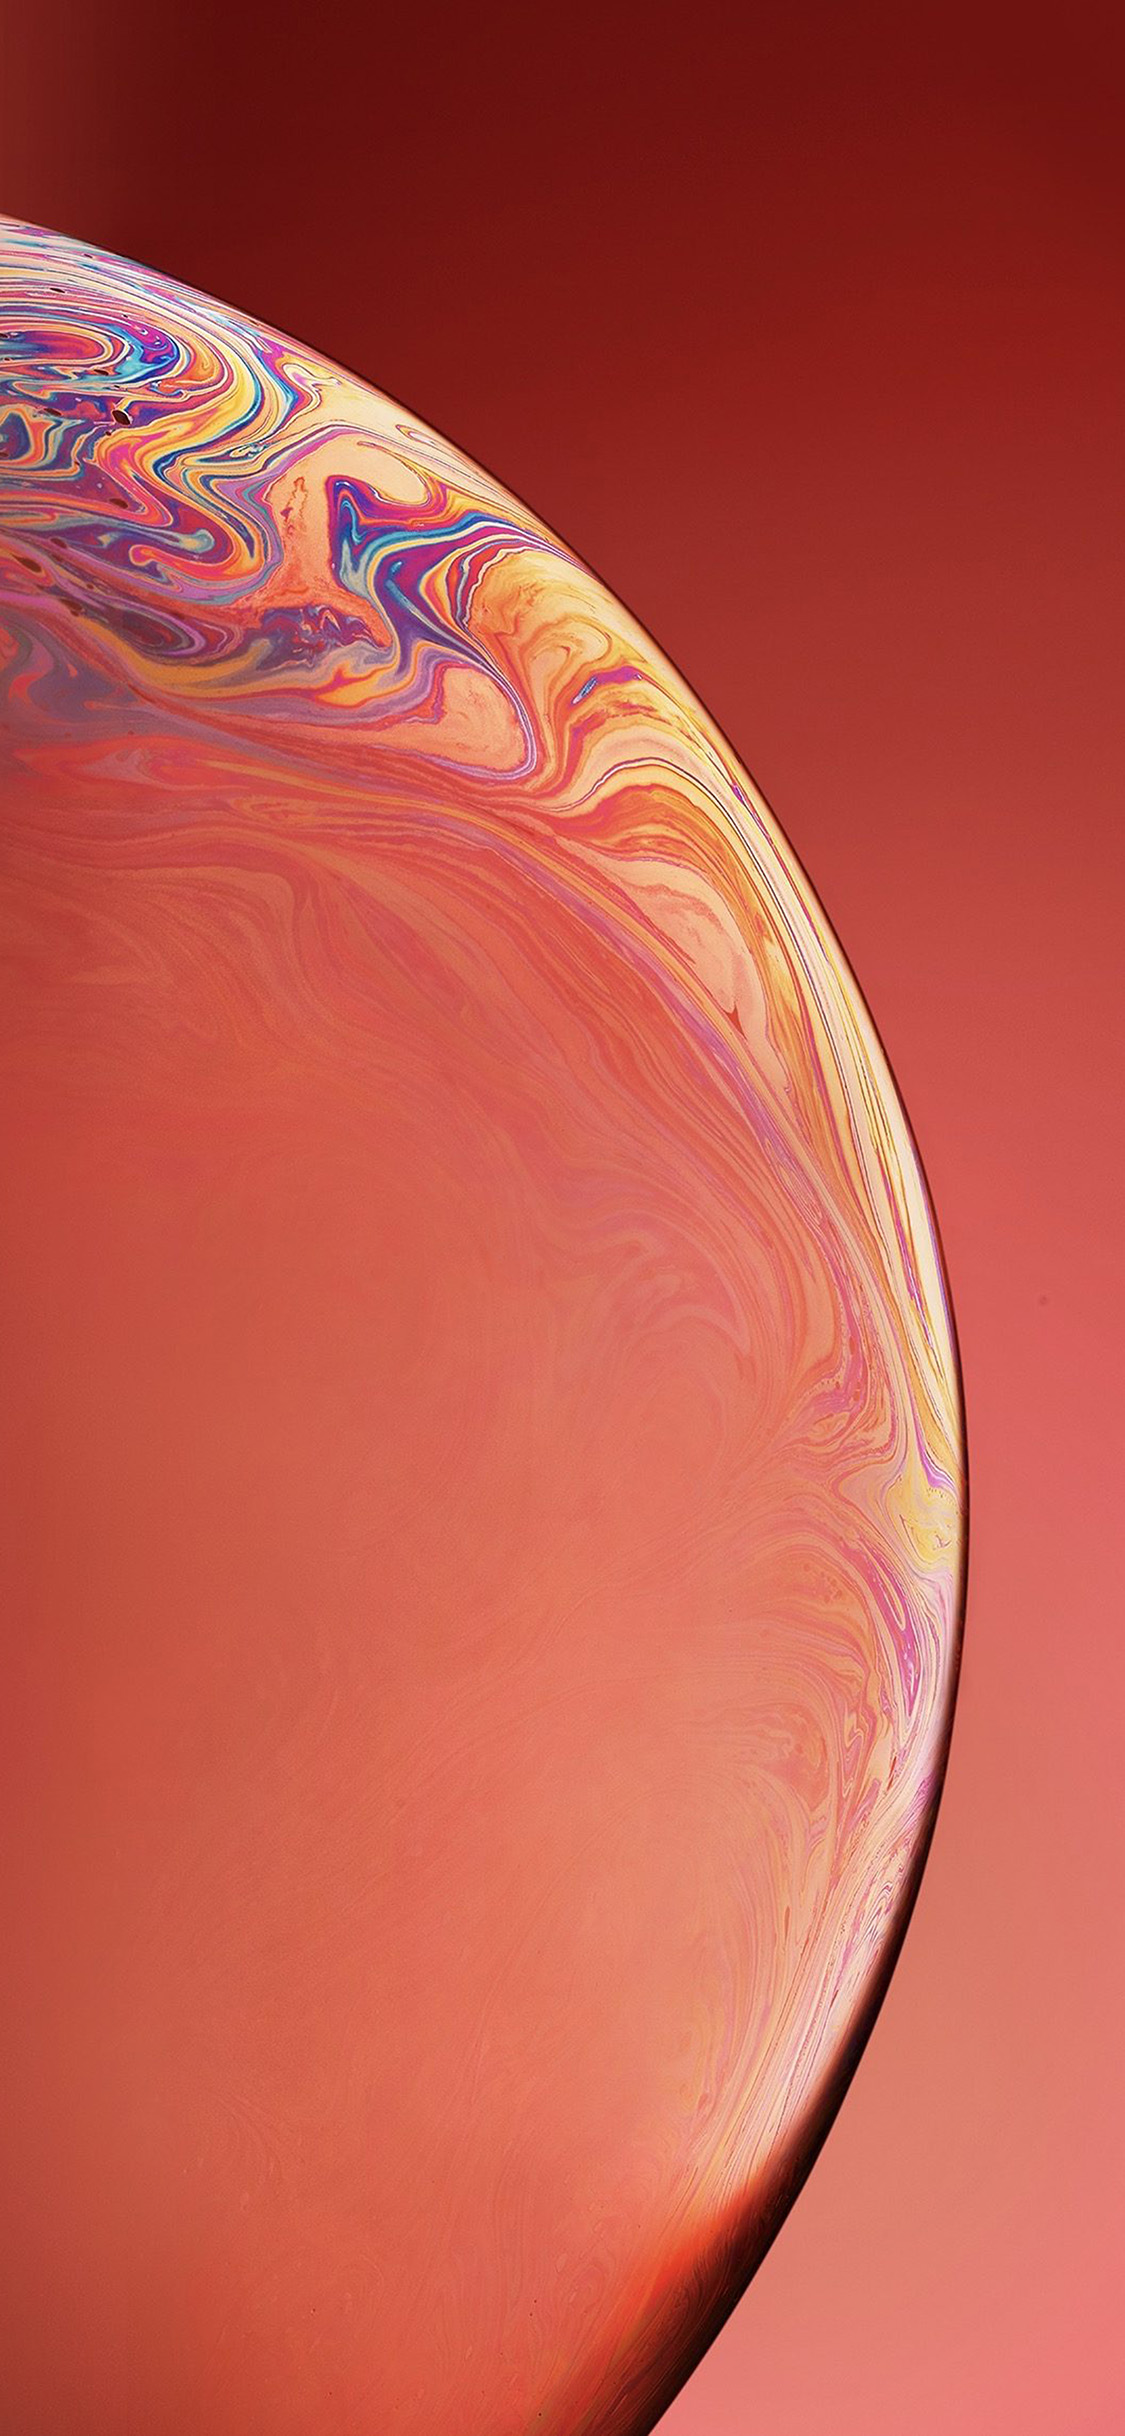 iPhonexpapers.com-Apple-iPhone-wallpaper-bg39-apple-iphone-xs-space-official-art-orange-bubble